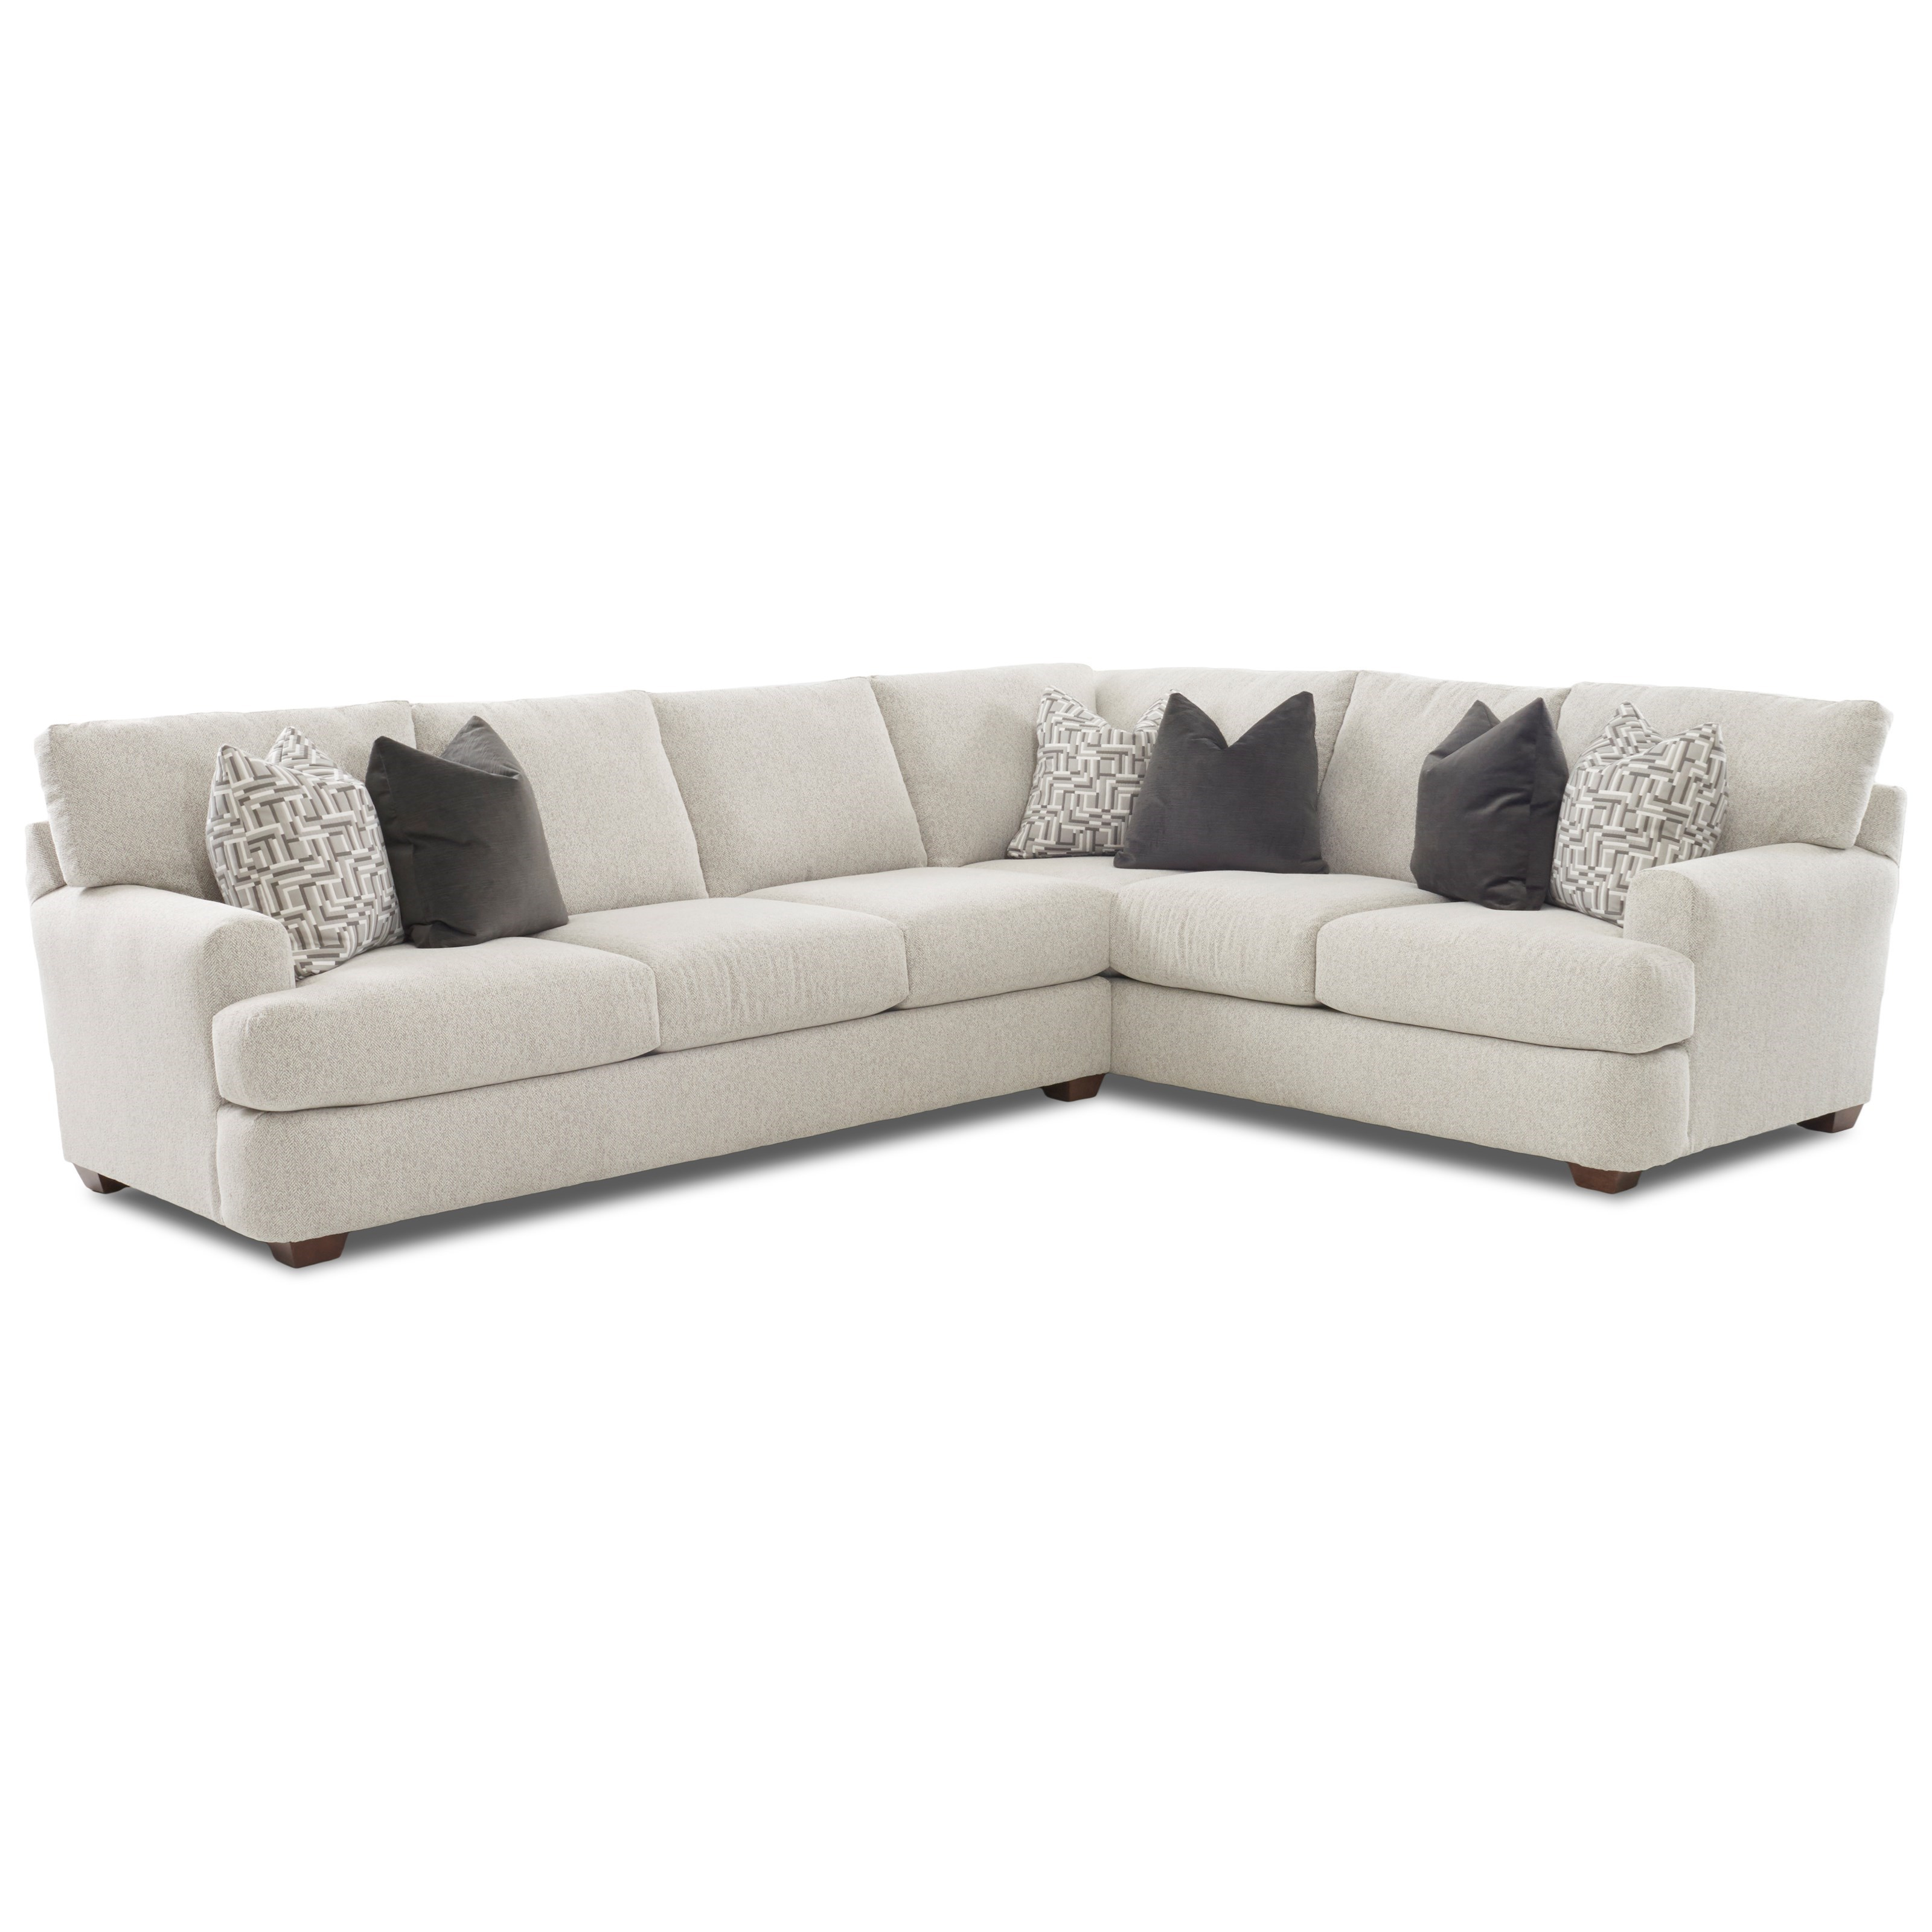 Metropia Hammond Two Piece Sectional Sofa With Raf Corner Sofa Ruby Gordon Home Sectional Sofas